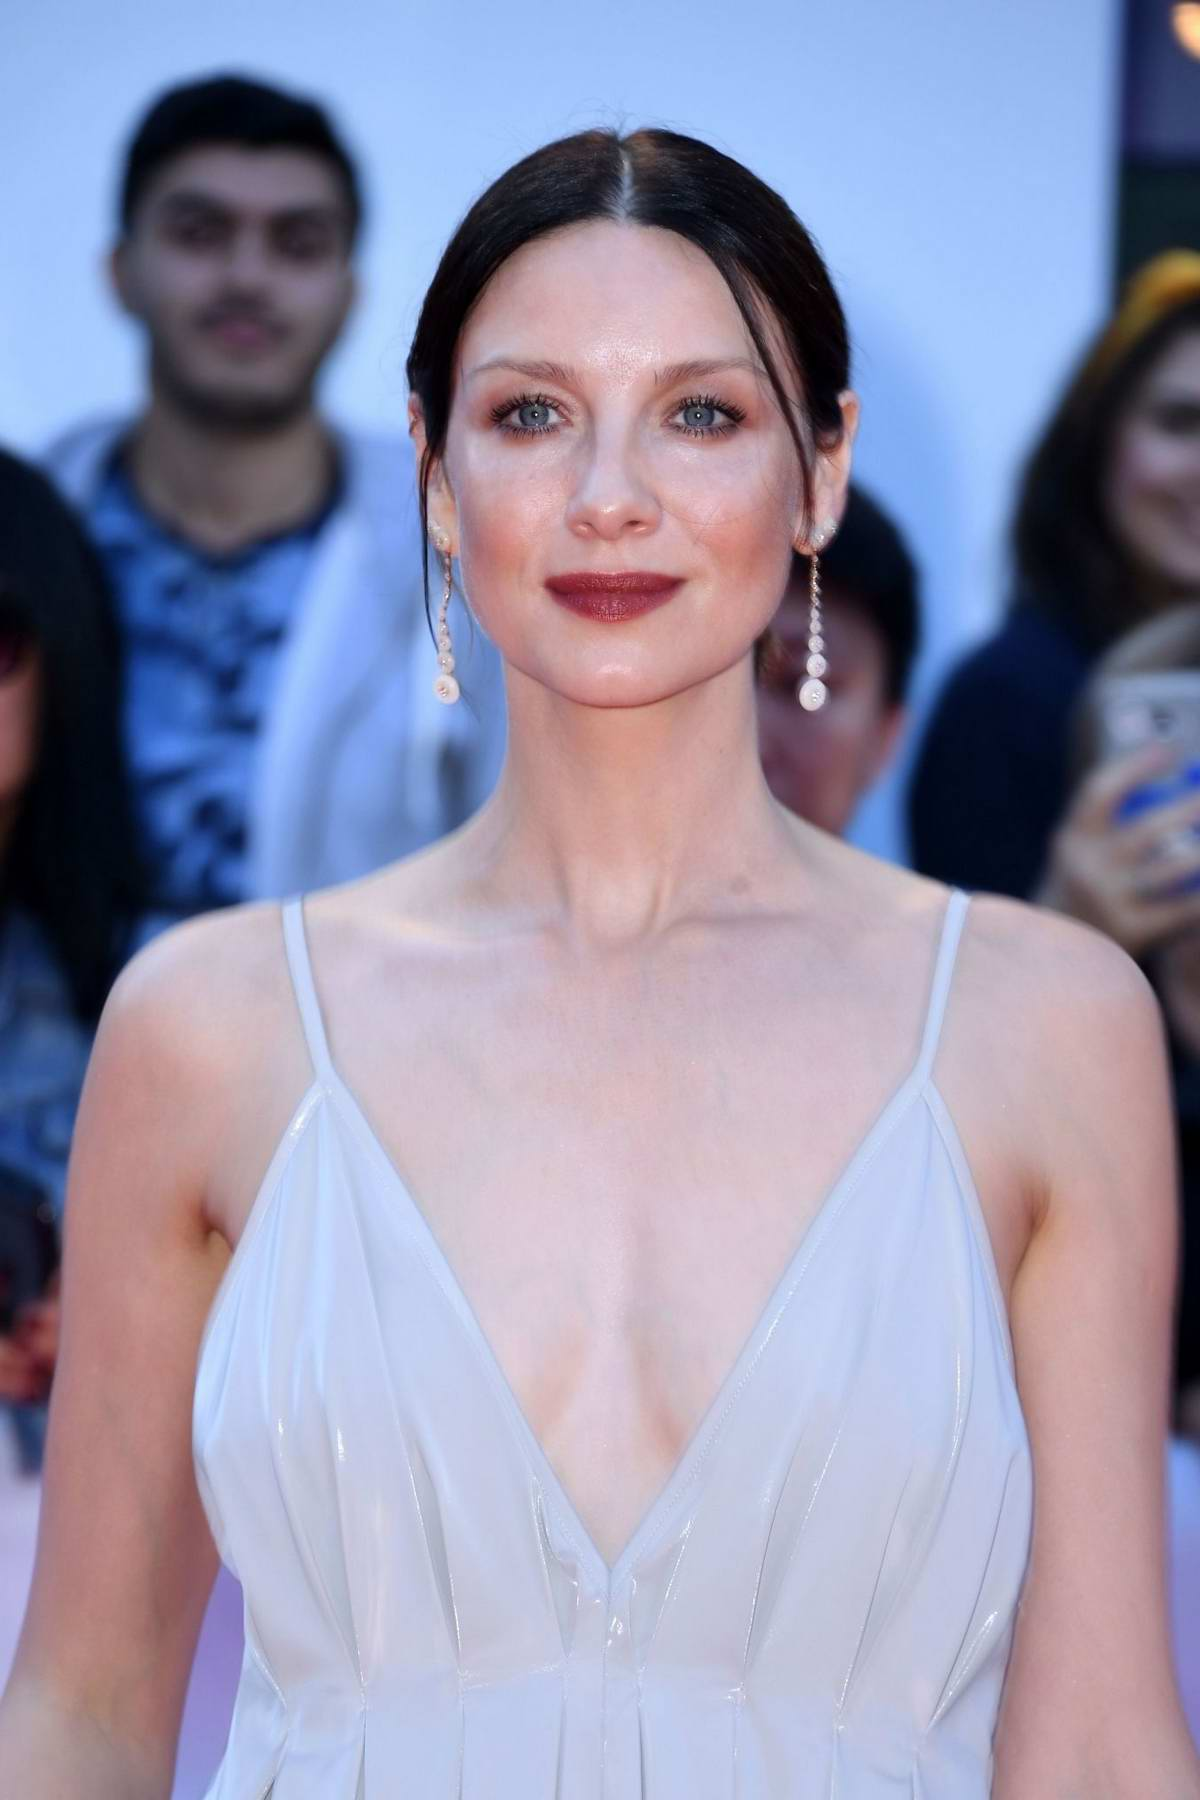 Caitriona Balfe Attends The Ford V Ferrari Premiere During The 2019 Toronto International Film Festival In Toronto Canada 090919 3